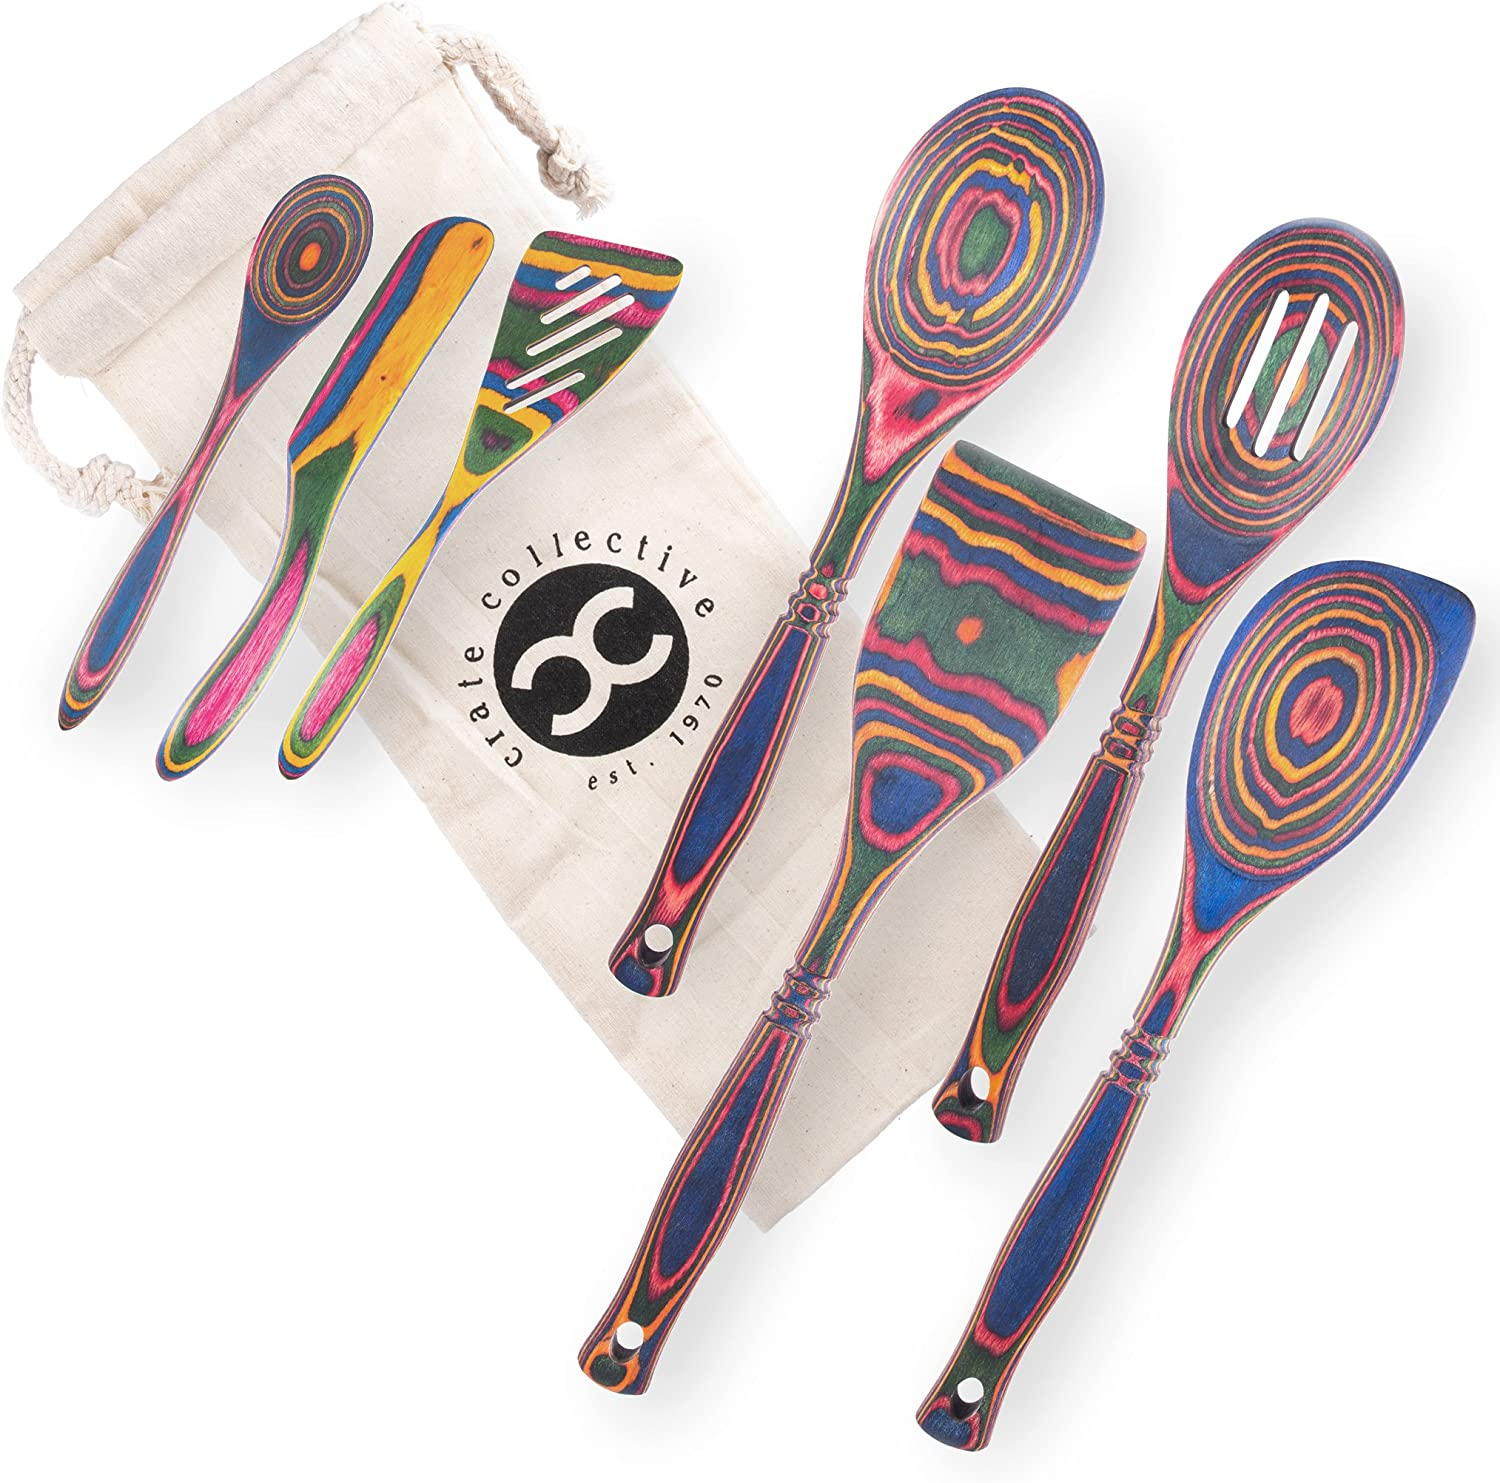 Exotic Sale SALE% OFF Pakkawood 7-Piece Kitchen Utensil Set ! Super beauty product restock quality top! Slotted Spoon with